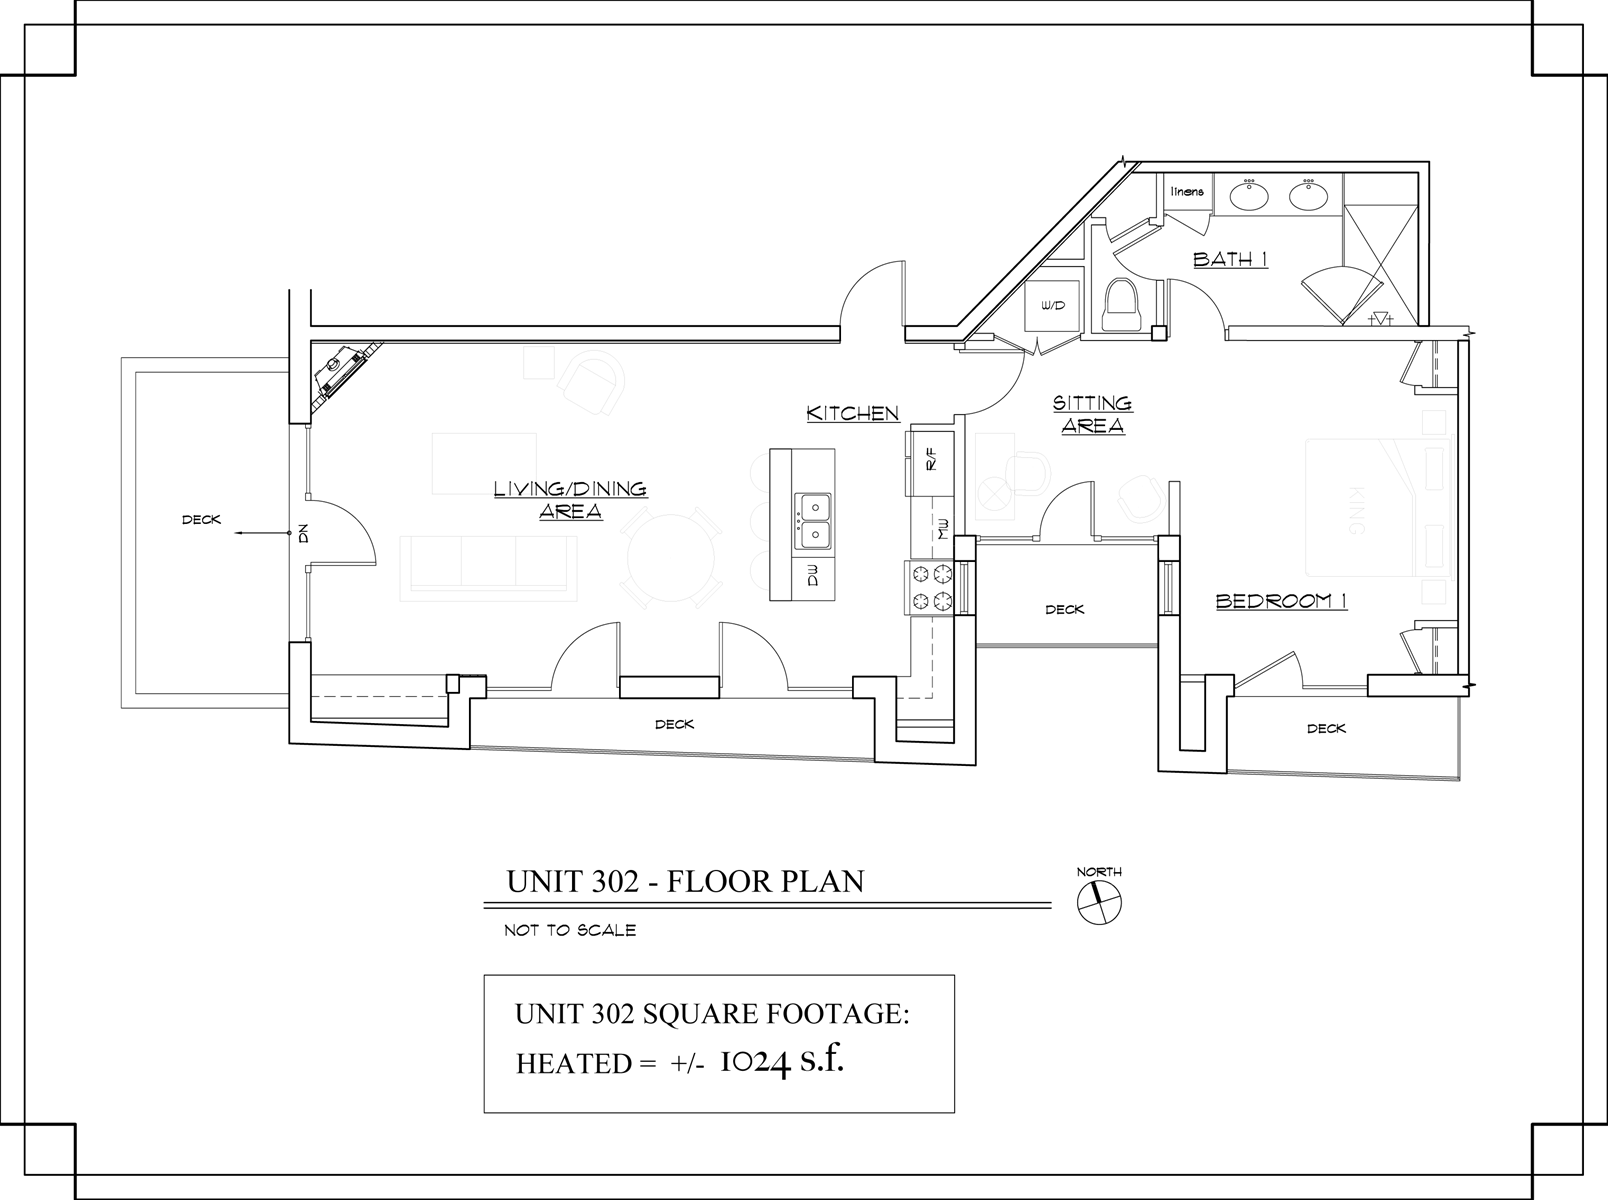 Floor Plan for The Lincoln 302, 1 Bed / 1 Bath, Luxury Condo